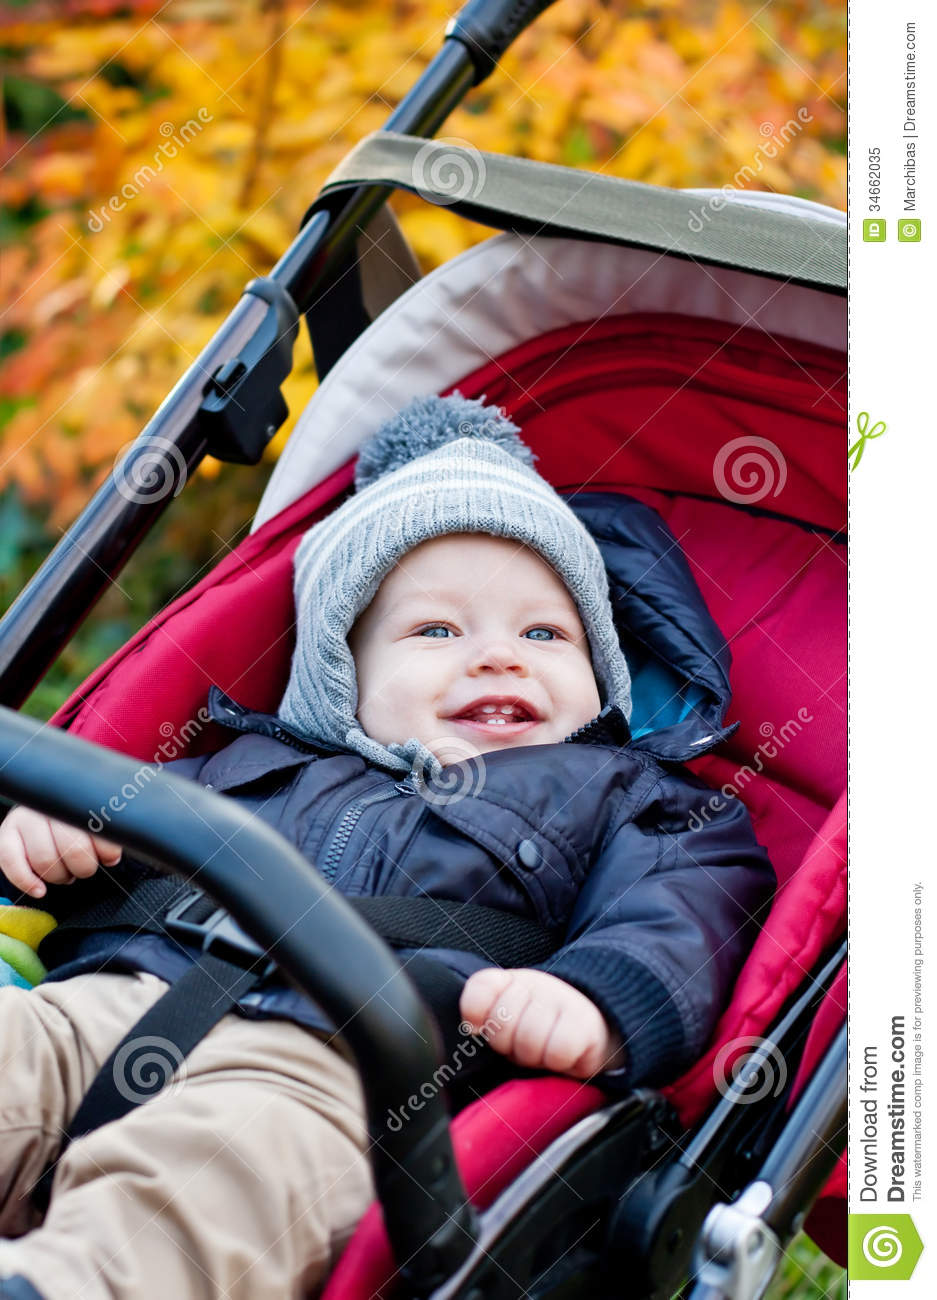 Happy Baby Boy Sitting In A Stroller Royalty Free Stock Photo ...